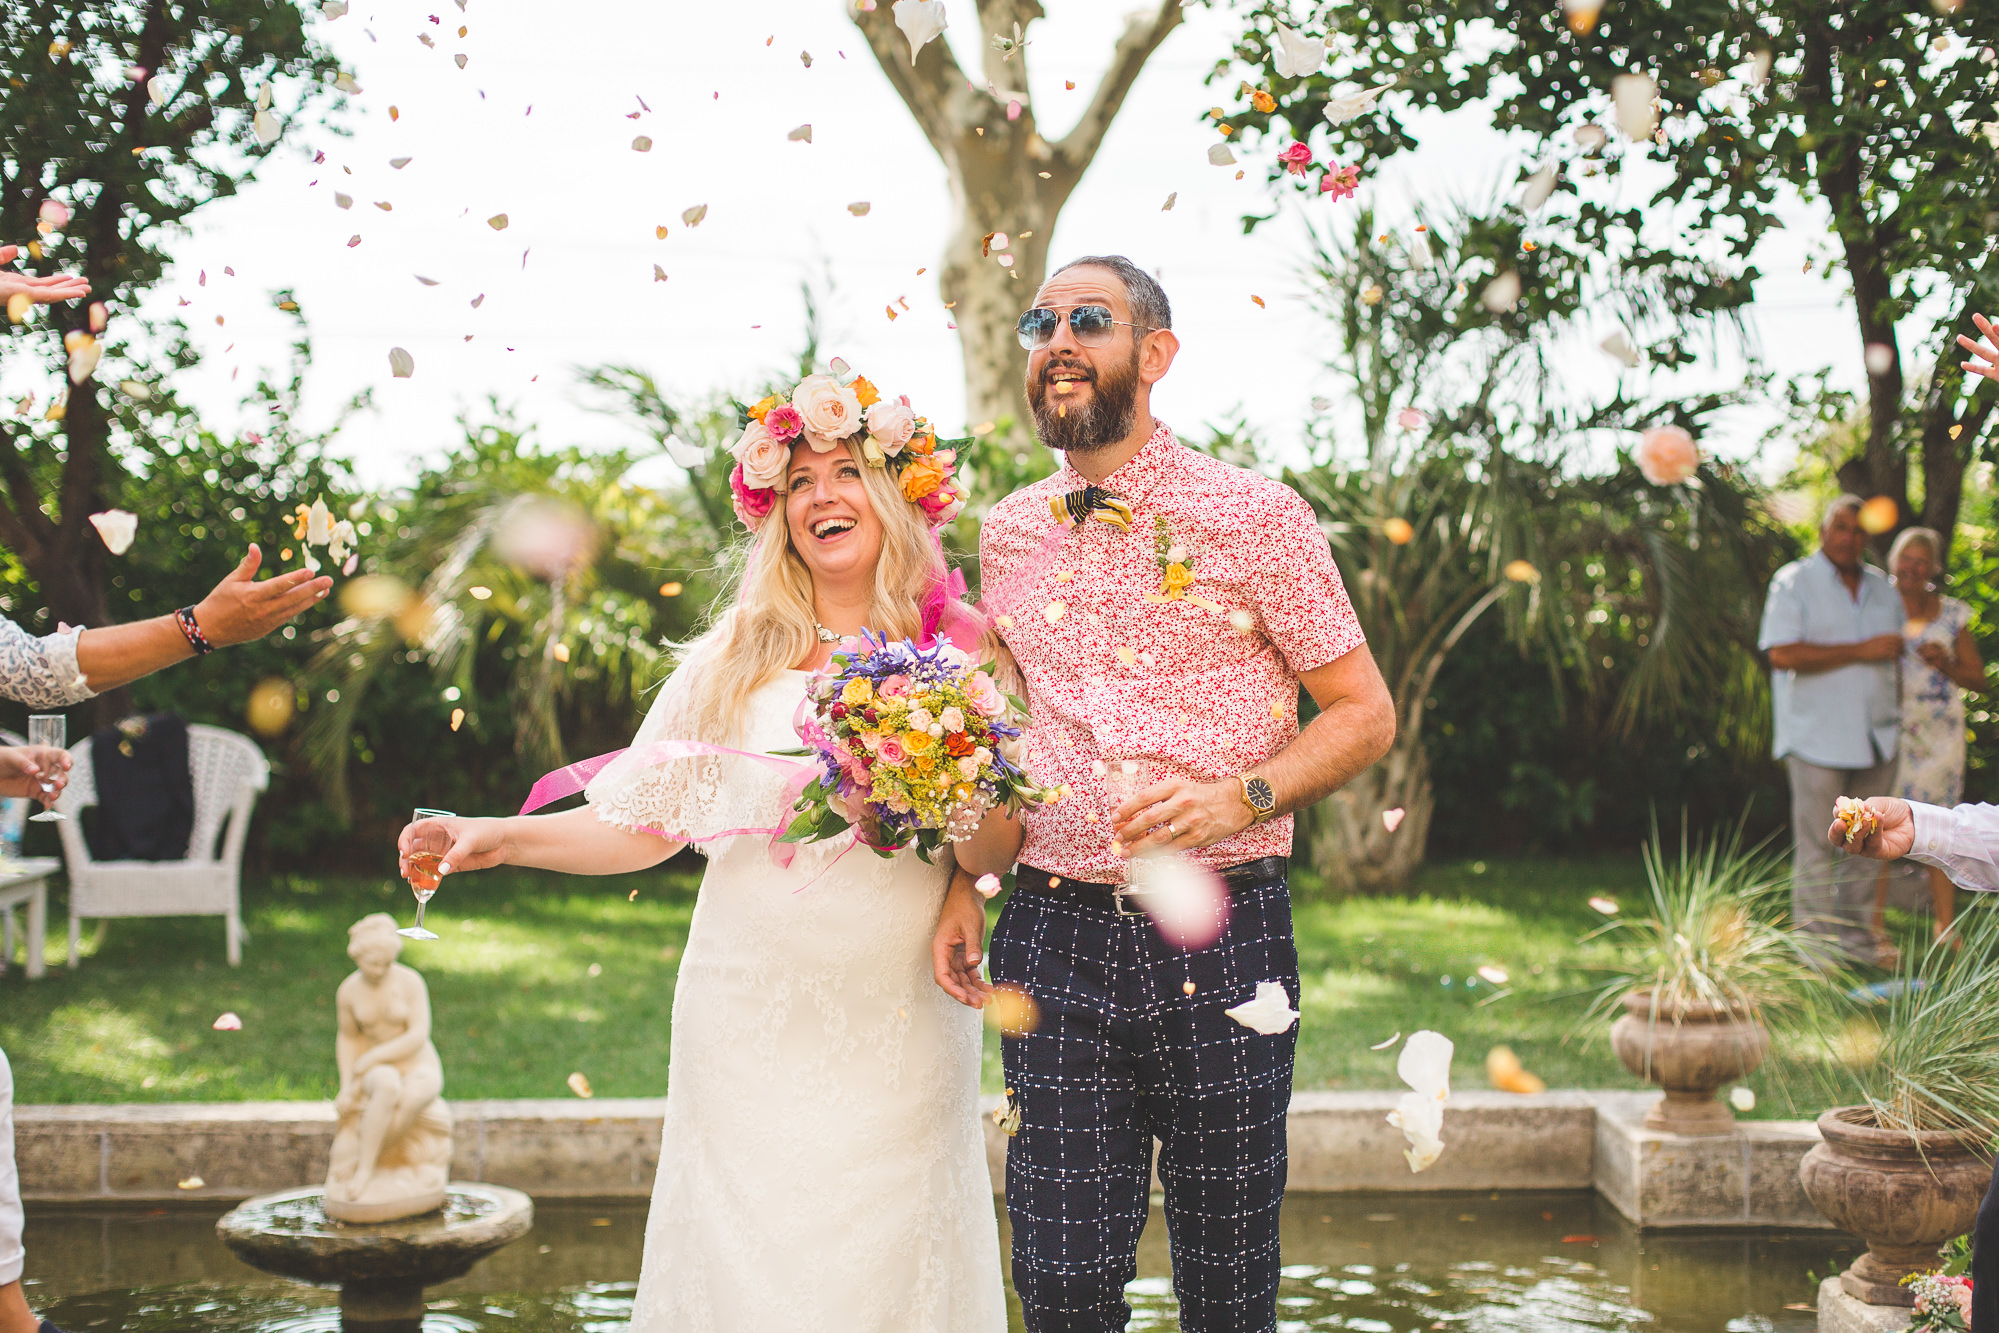 Destination wedding photography of bride and groom with colourful confetti in Chateau Du Puits Es Pratx. The bride also wears a colourful flower crown